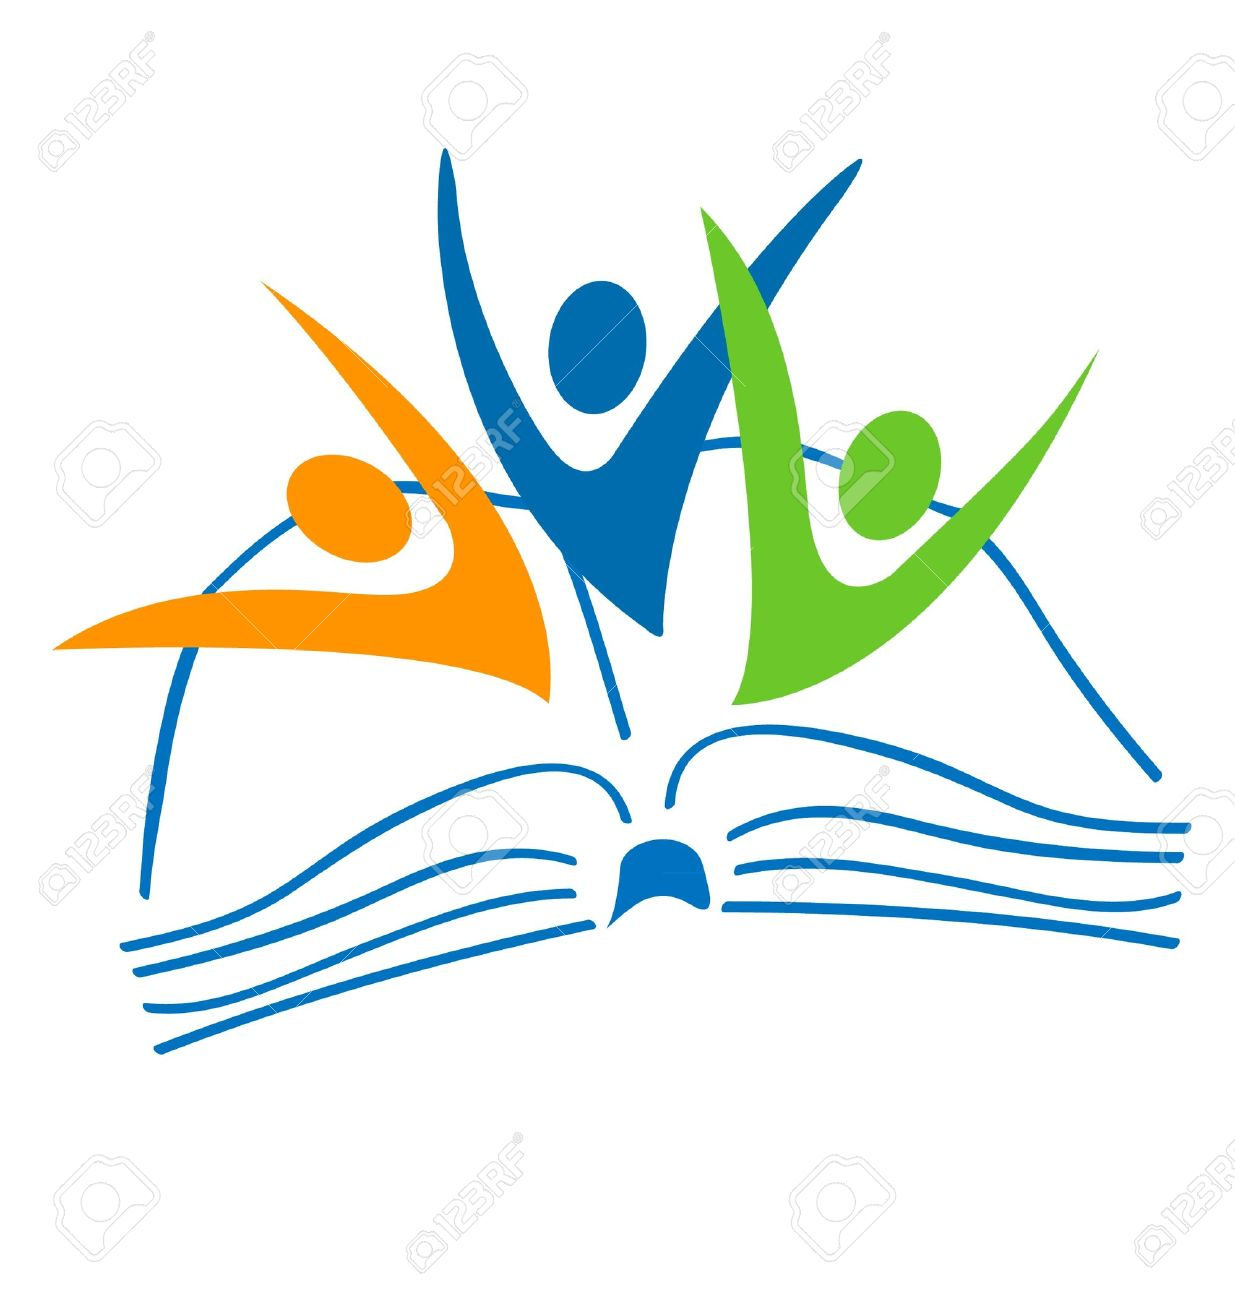 open book and students figures logo royalty free cliparts vectors rh 123rf com open book logo black and white open book logo meaning